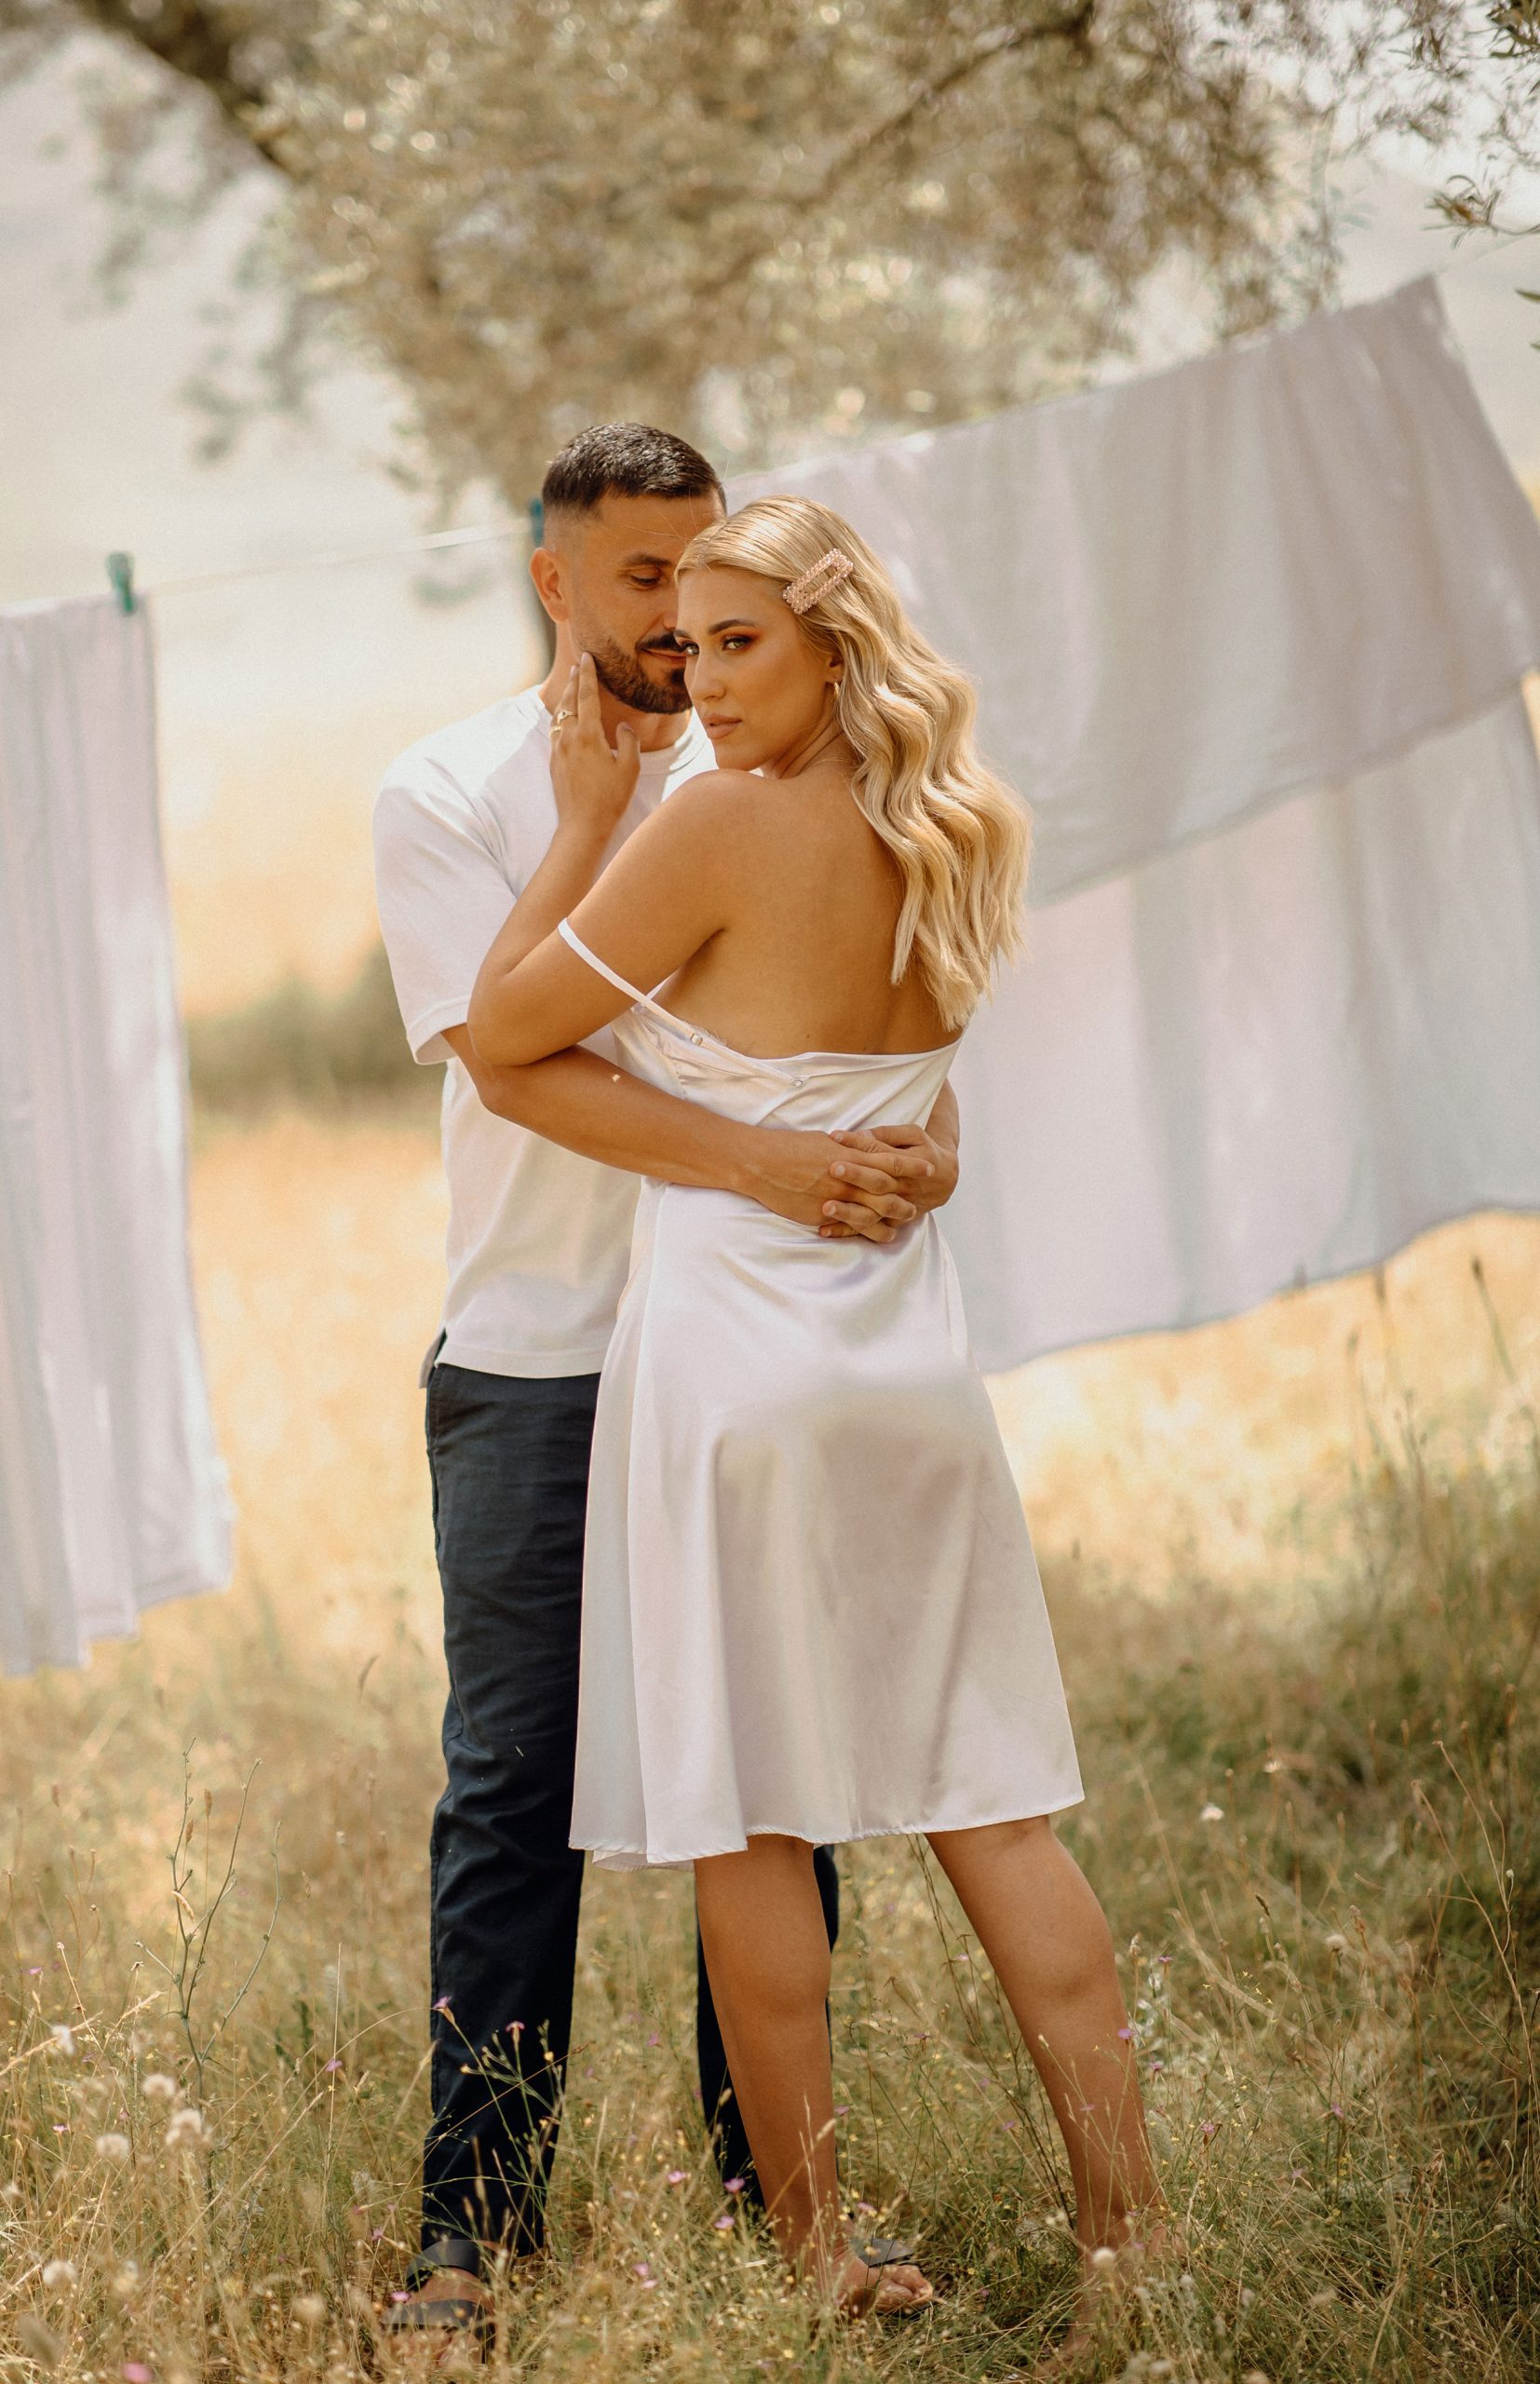 Romantic couples' photography in a field